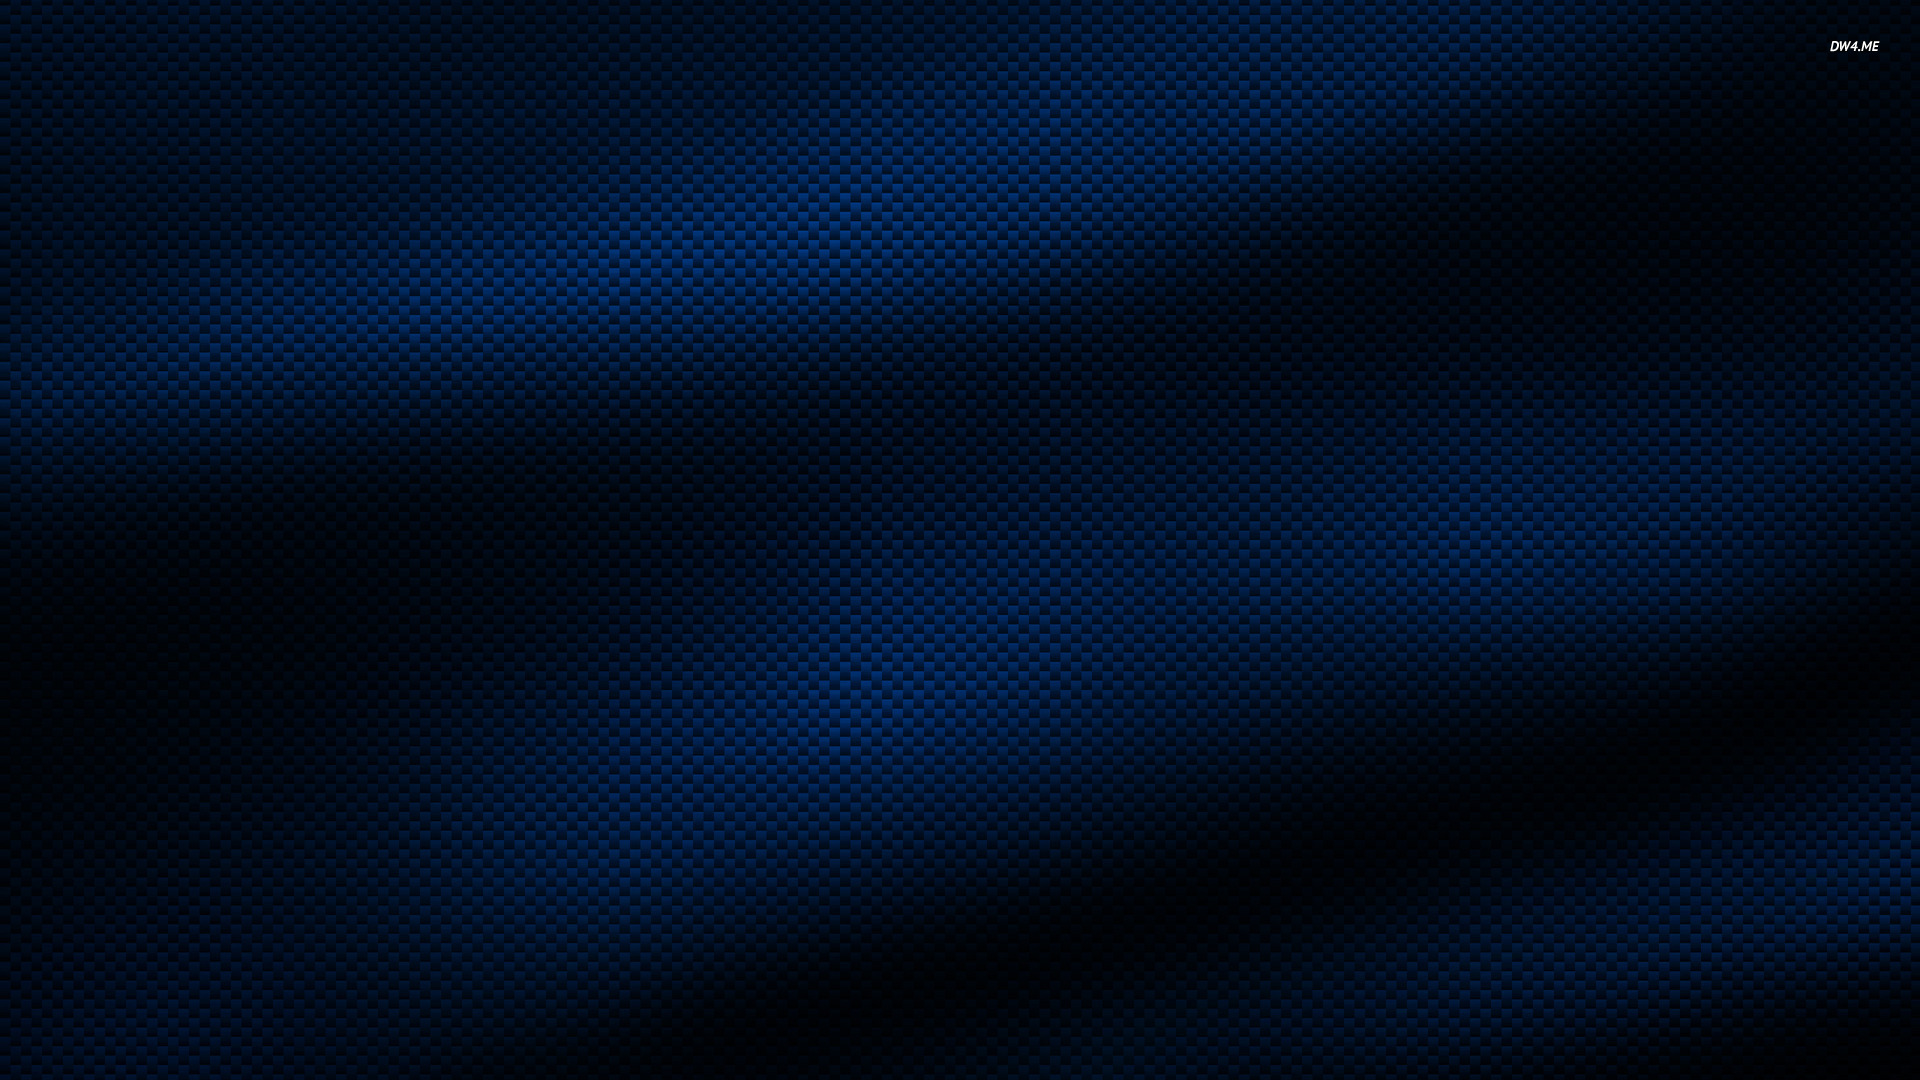 carbon fiber hd wallpaper wallpapersafari